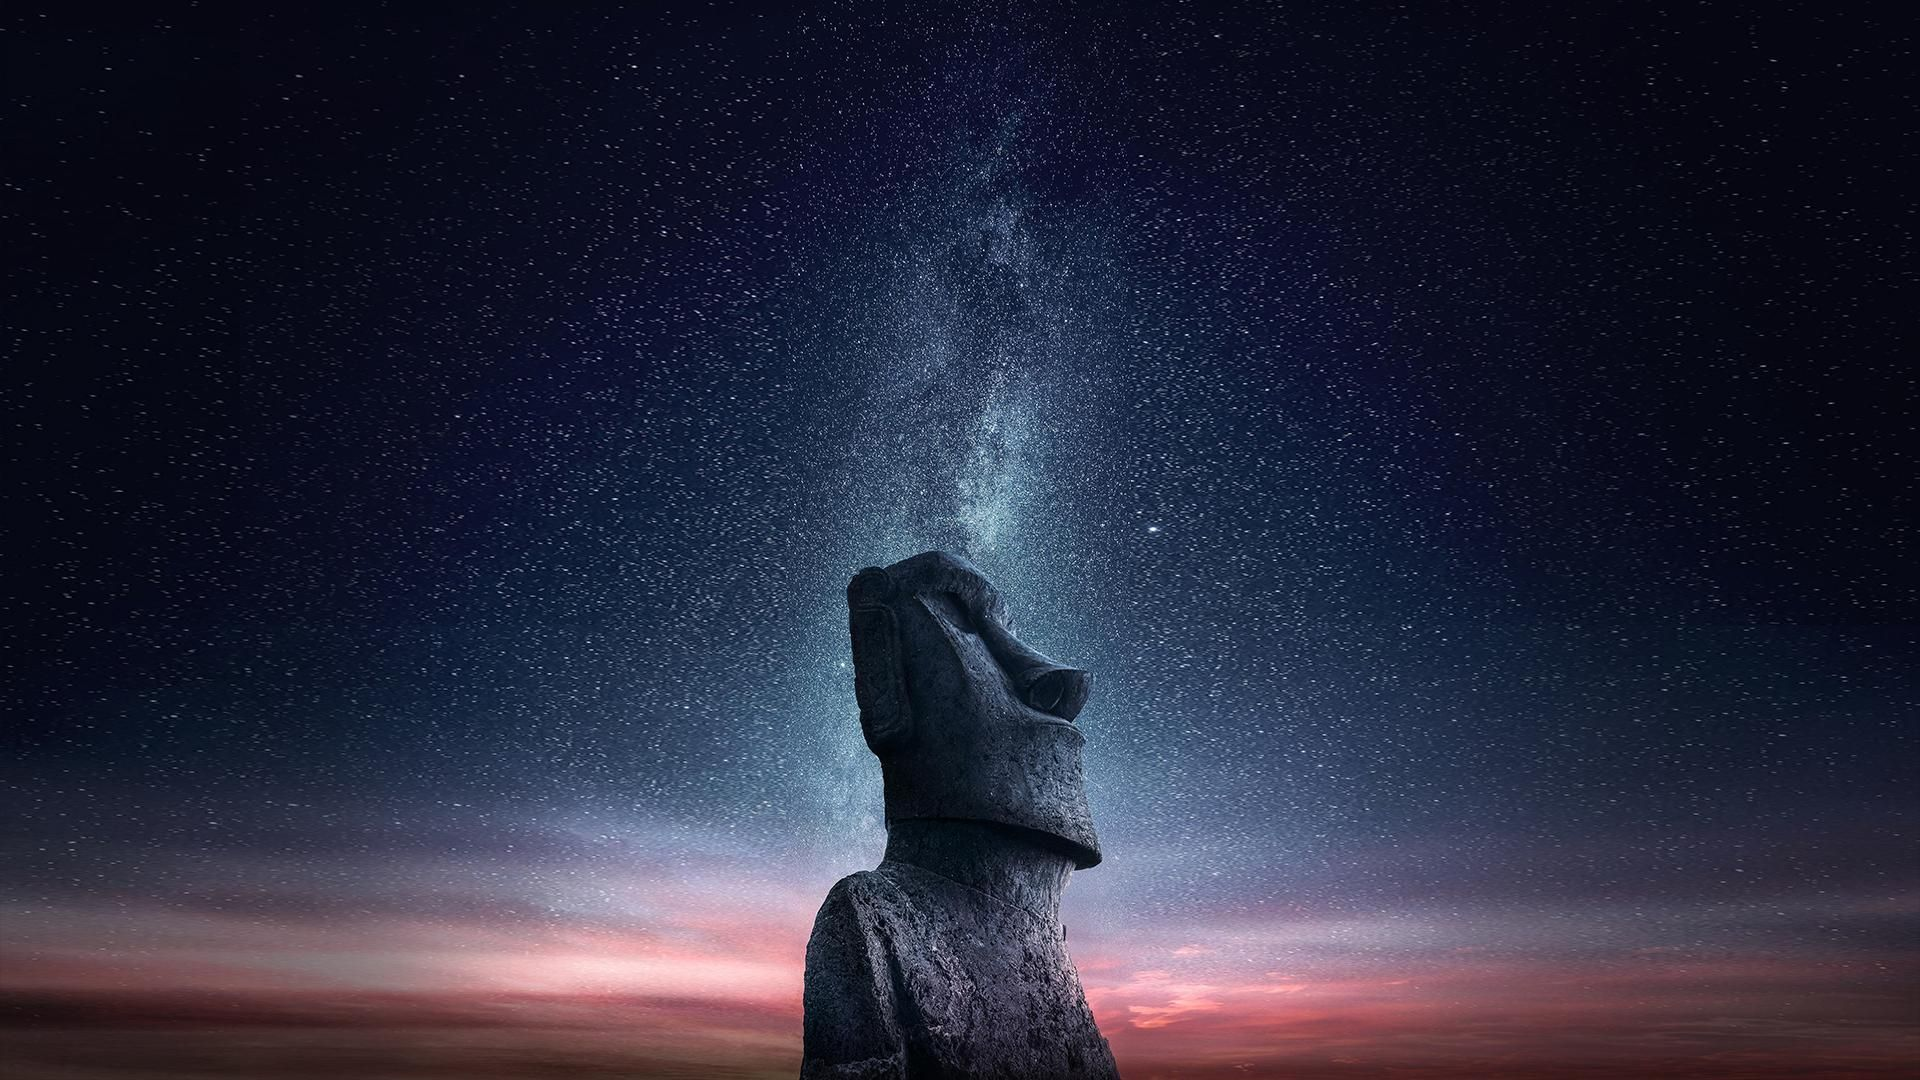 I Just Made A Horizontal Version For Computer Of My Famous Moai